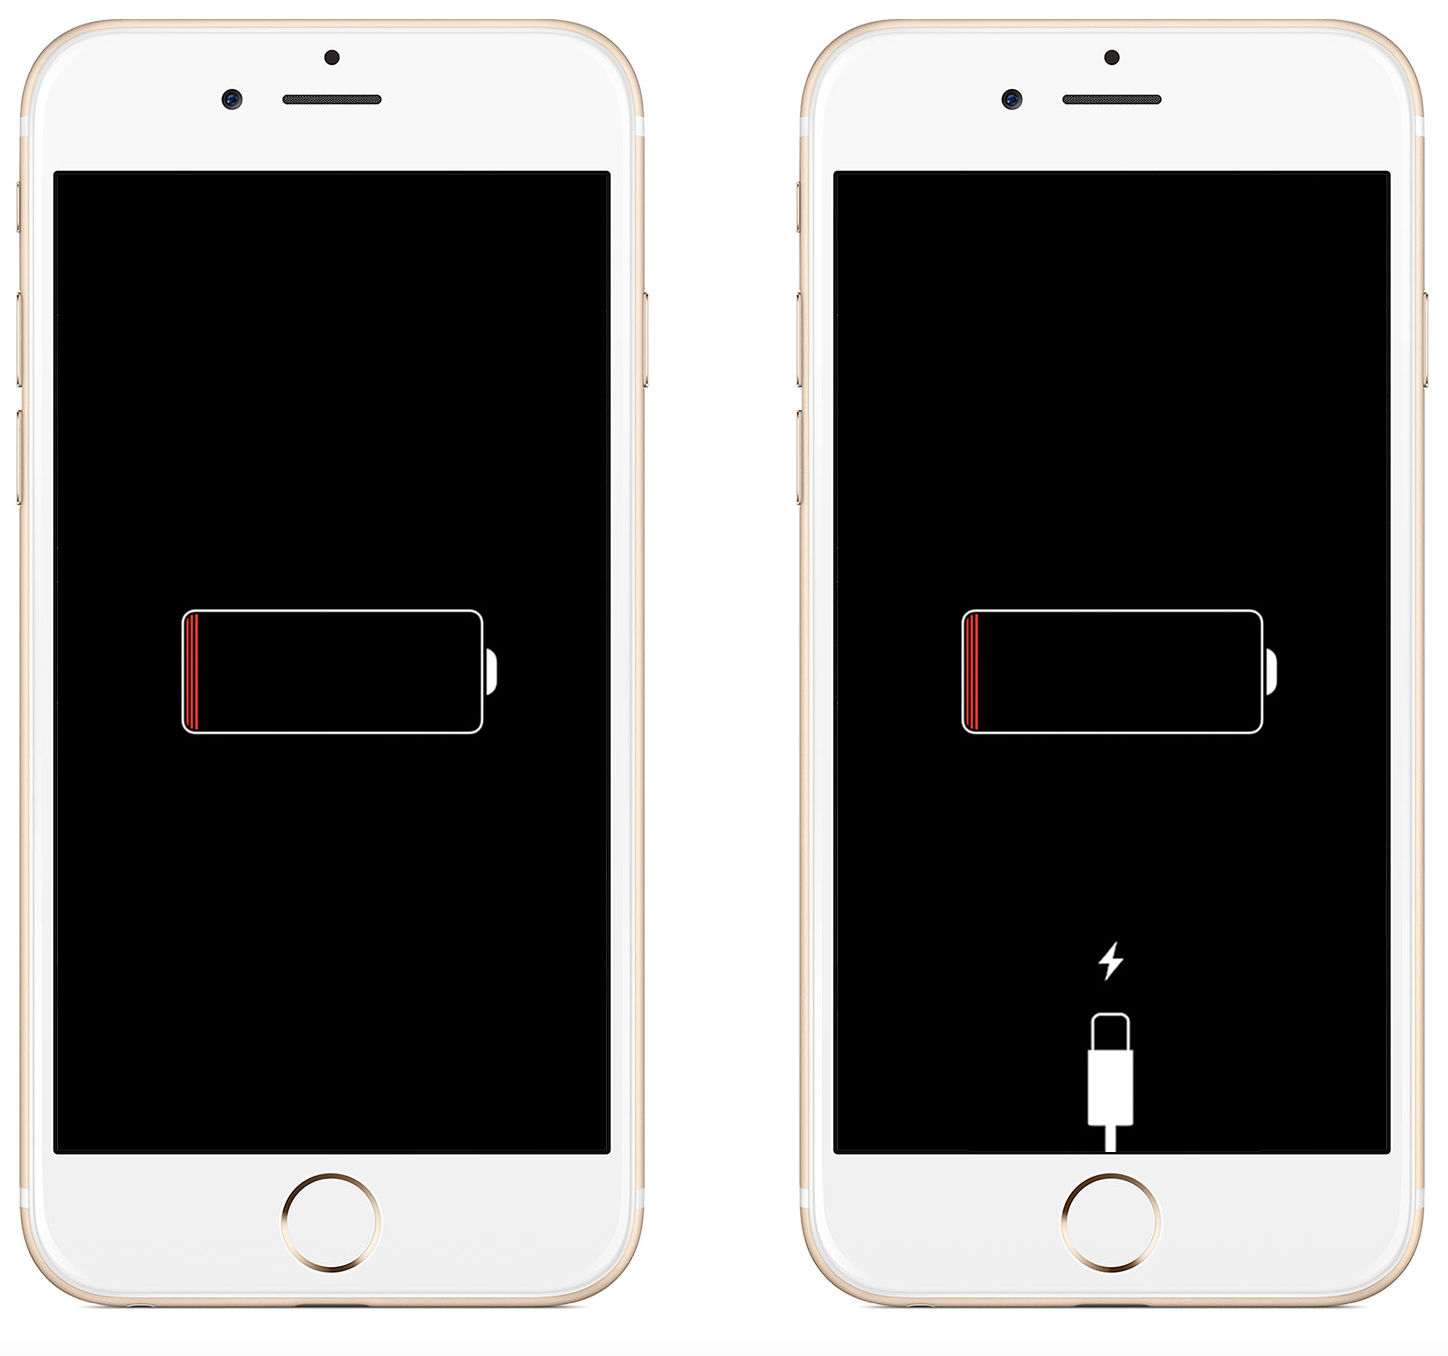 iphone not turning on - iPhone dead battery screens